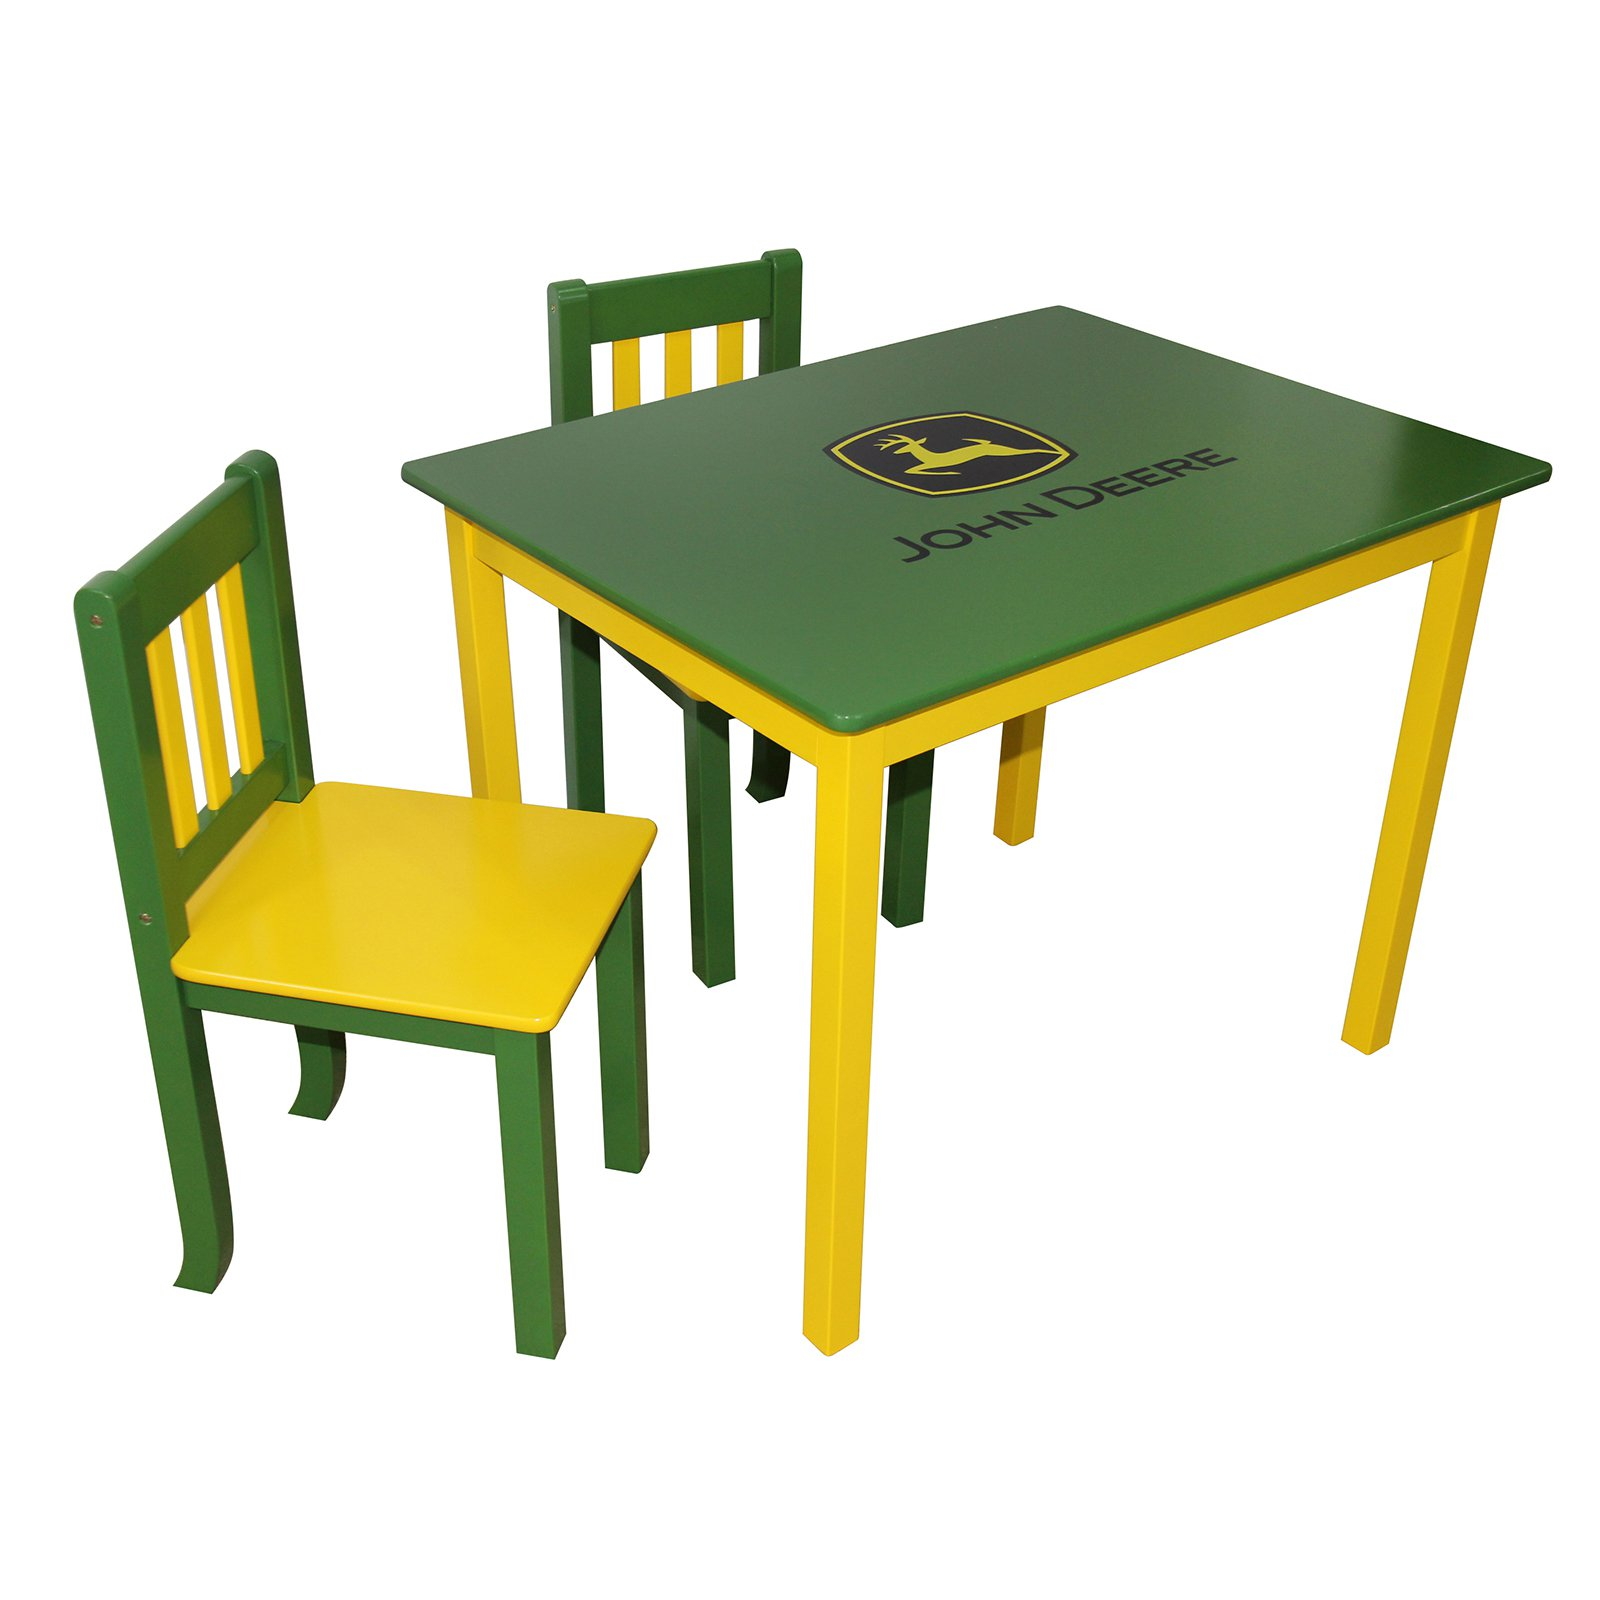 John Deere Kids Table & Chairs Set, Multiple Colors